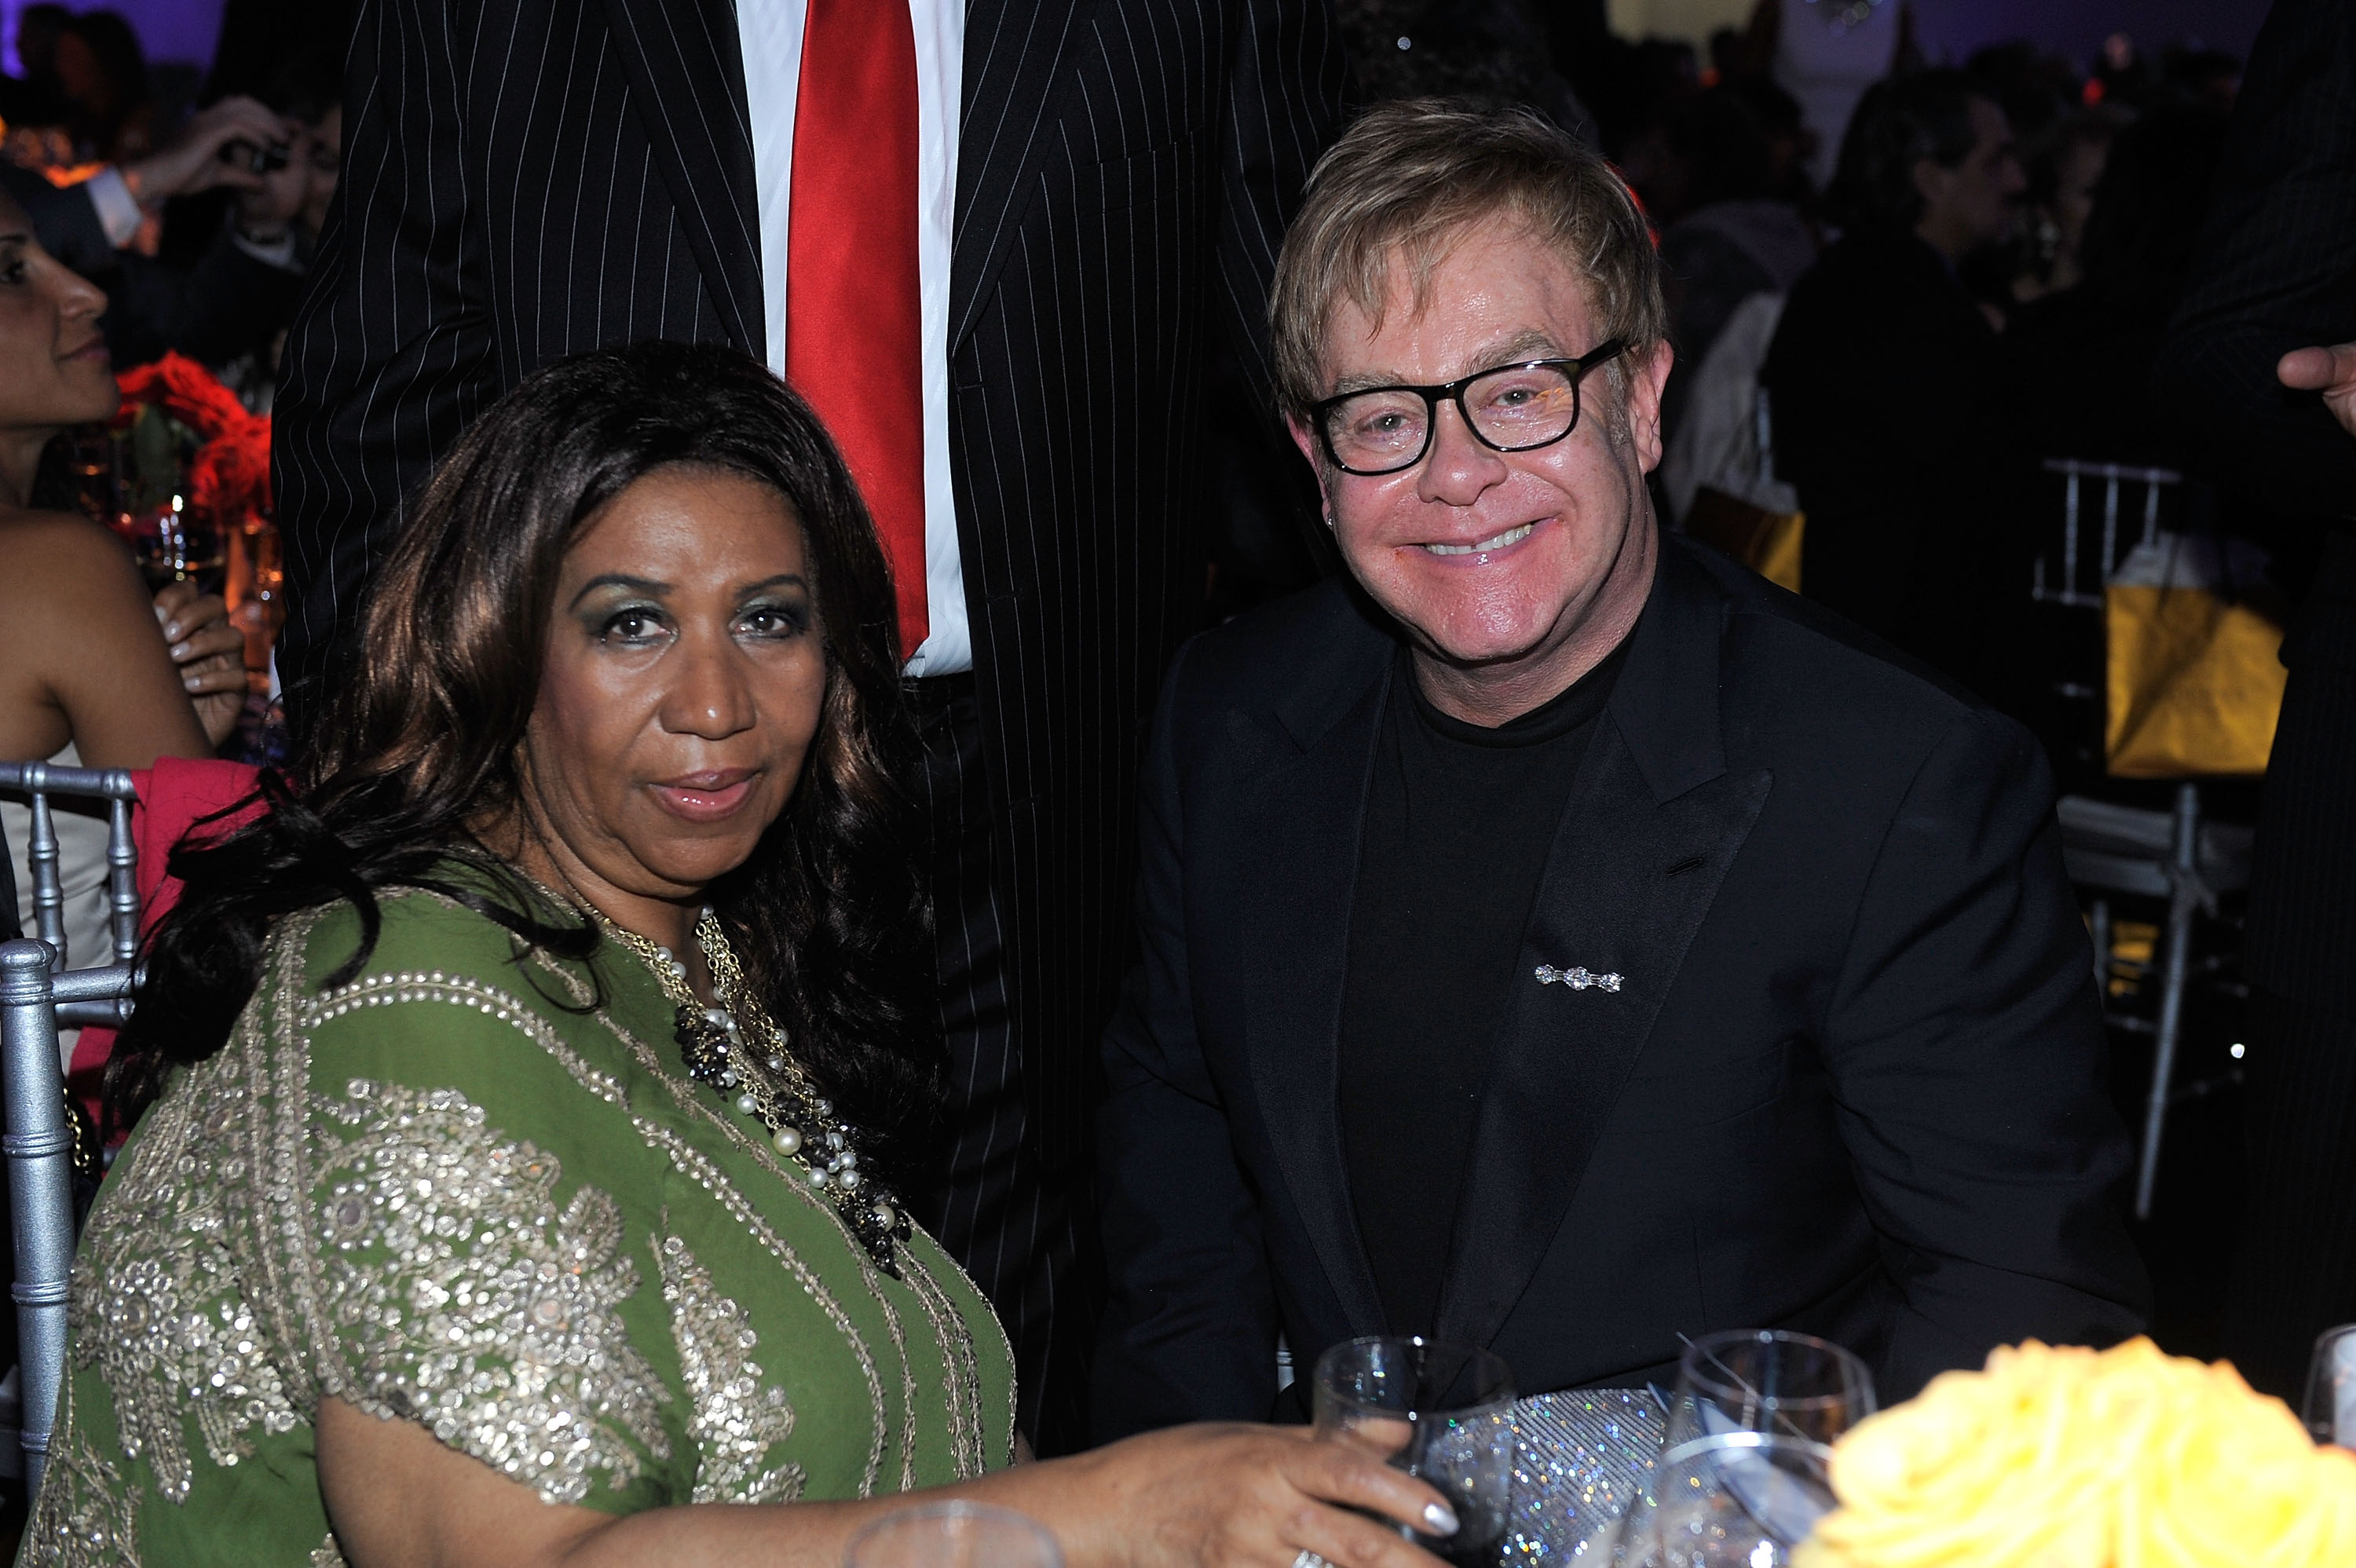 Aretha Franklin  and Elton John in 2011 in New York City